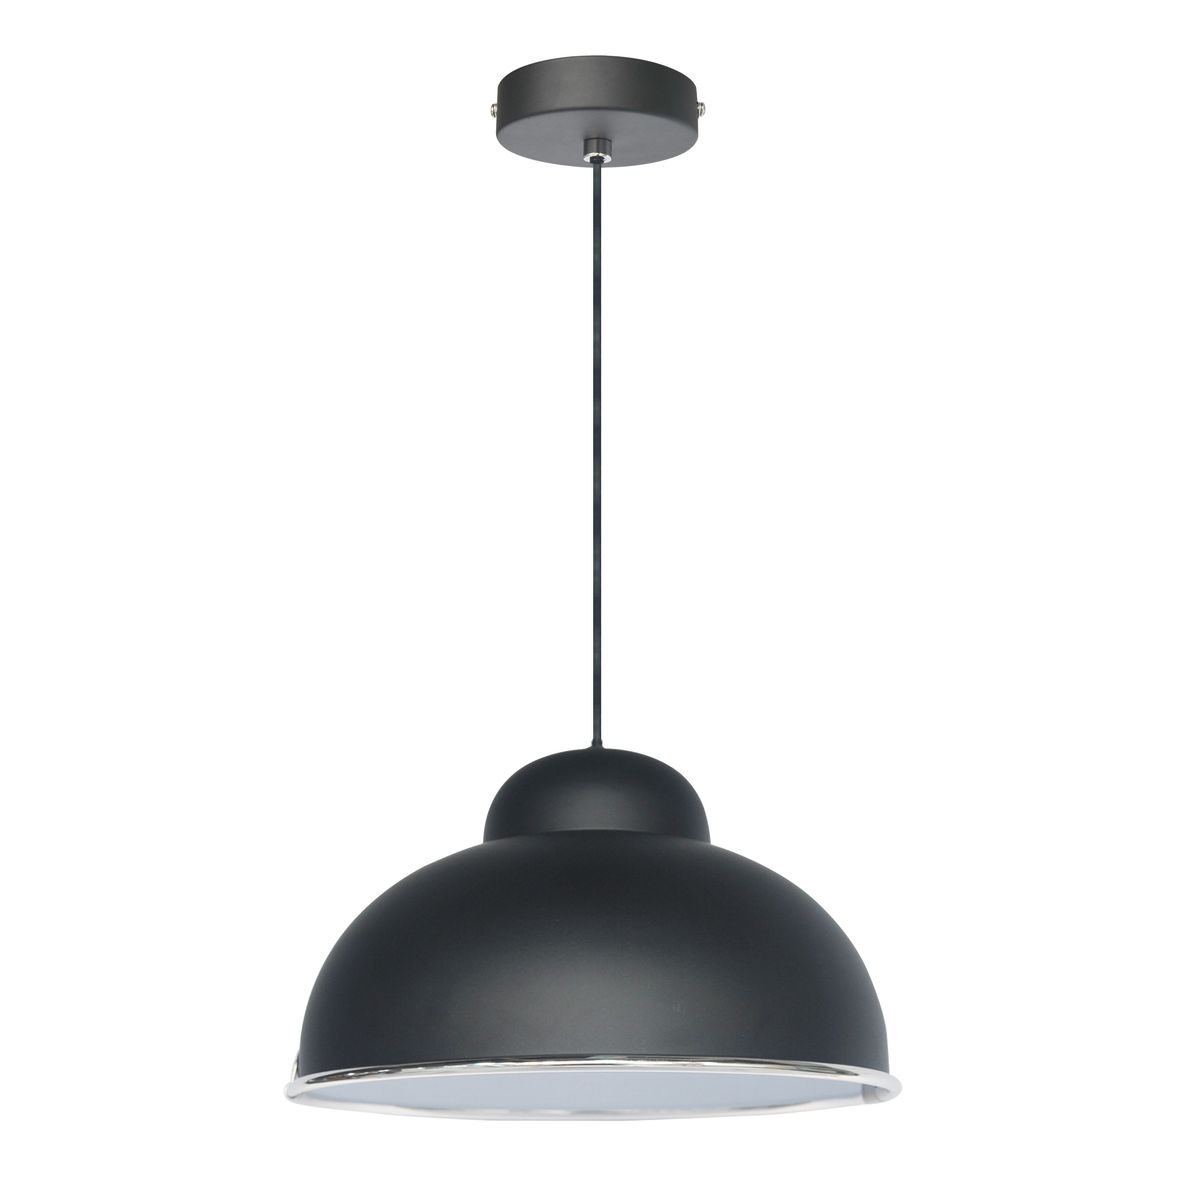 Lampade industriali ikea good lampadine led wireless ikea for Luci led leroy merlin